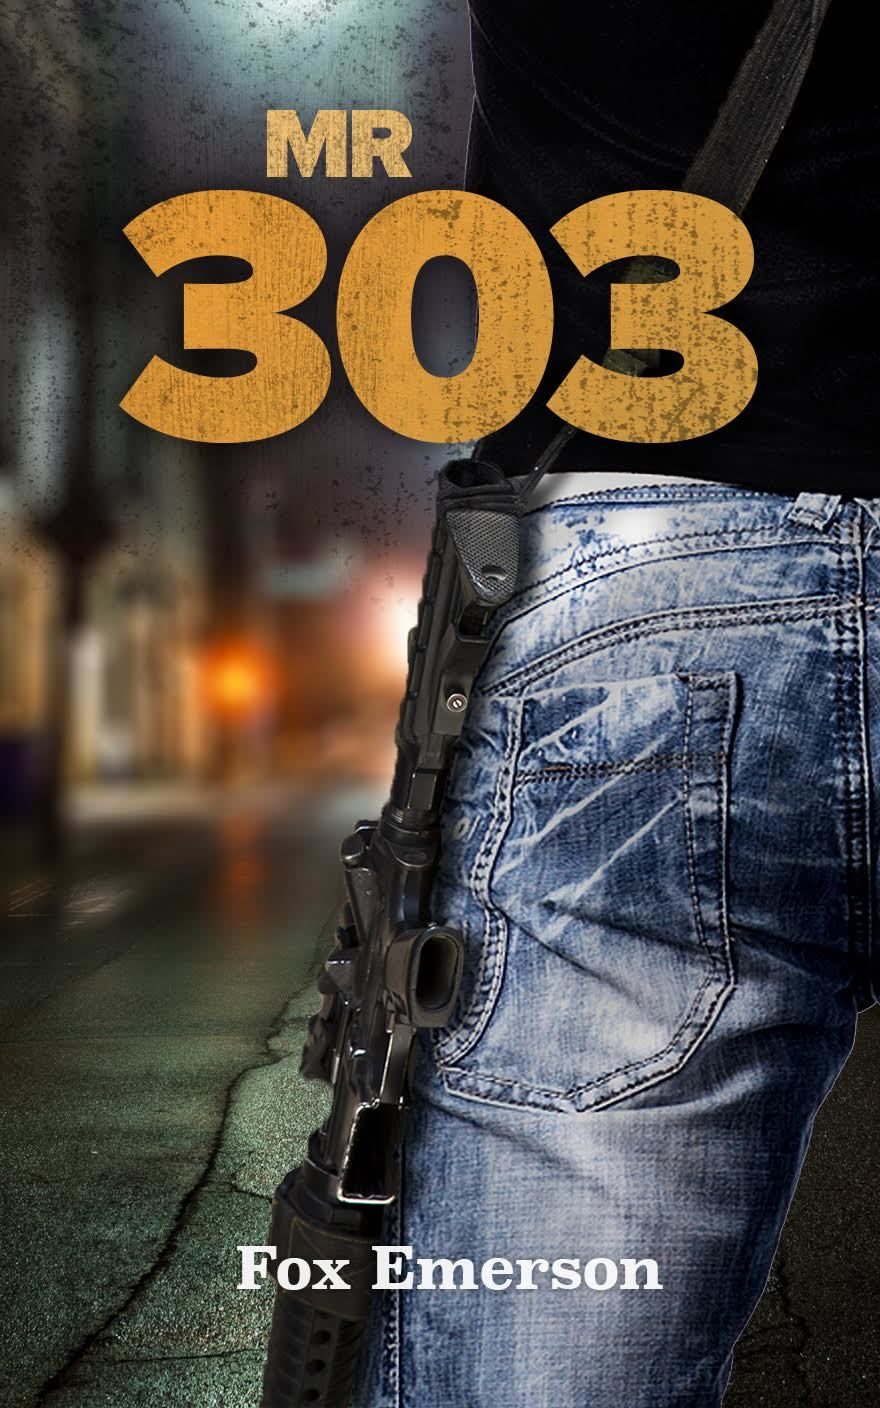 Mr 303 on Amazon